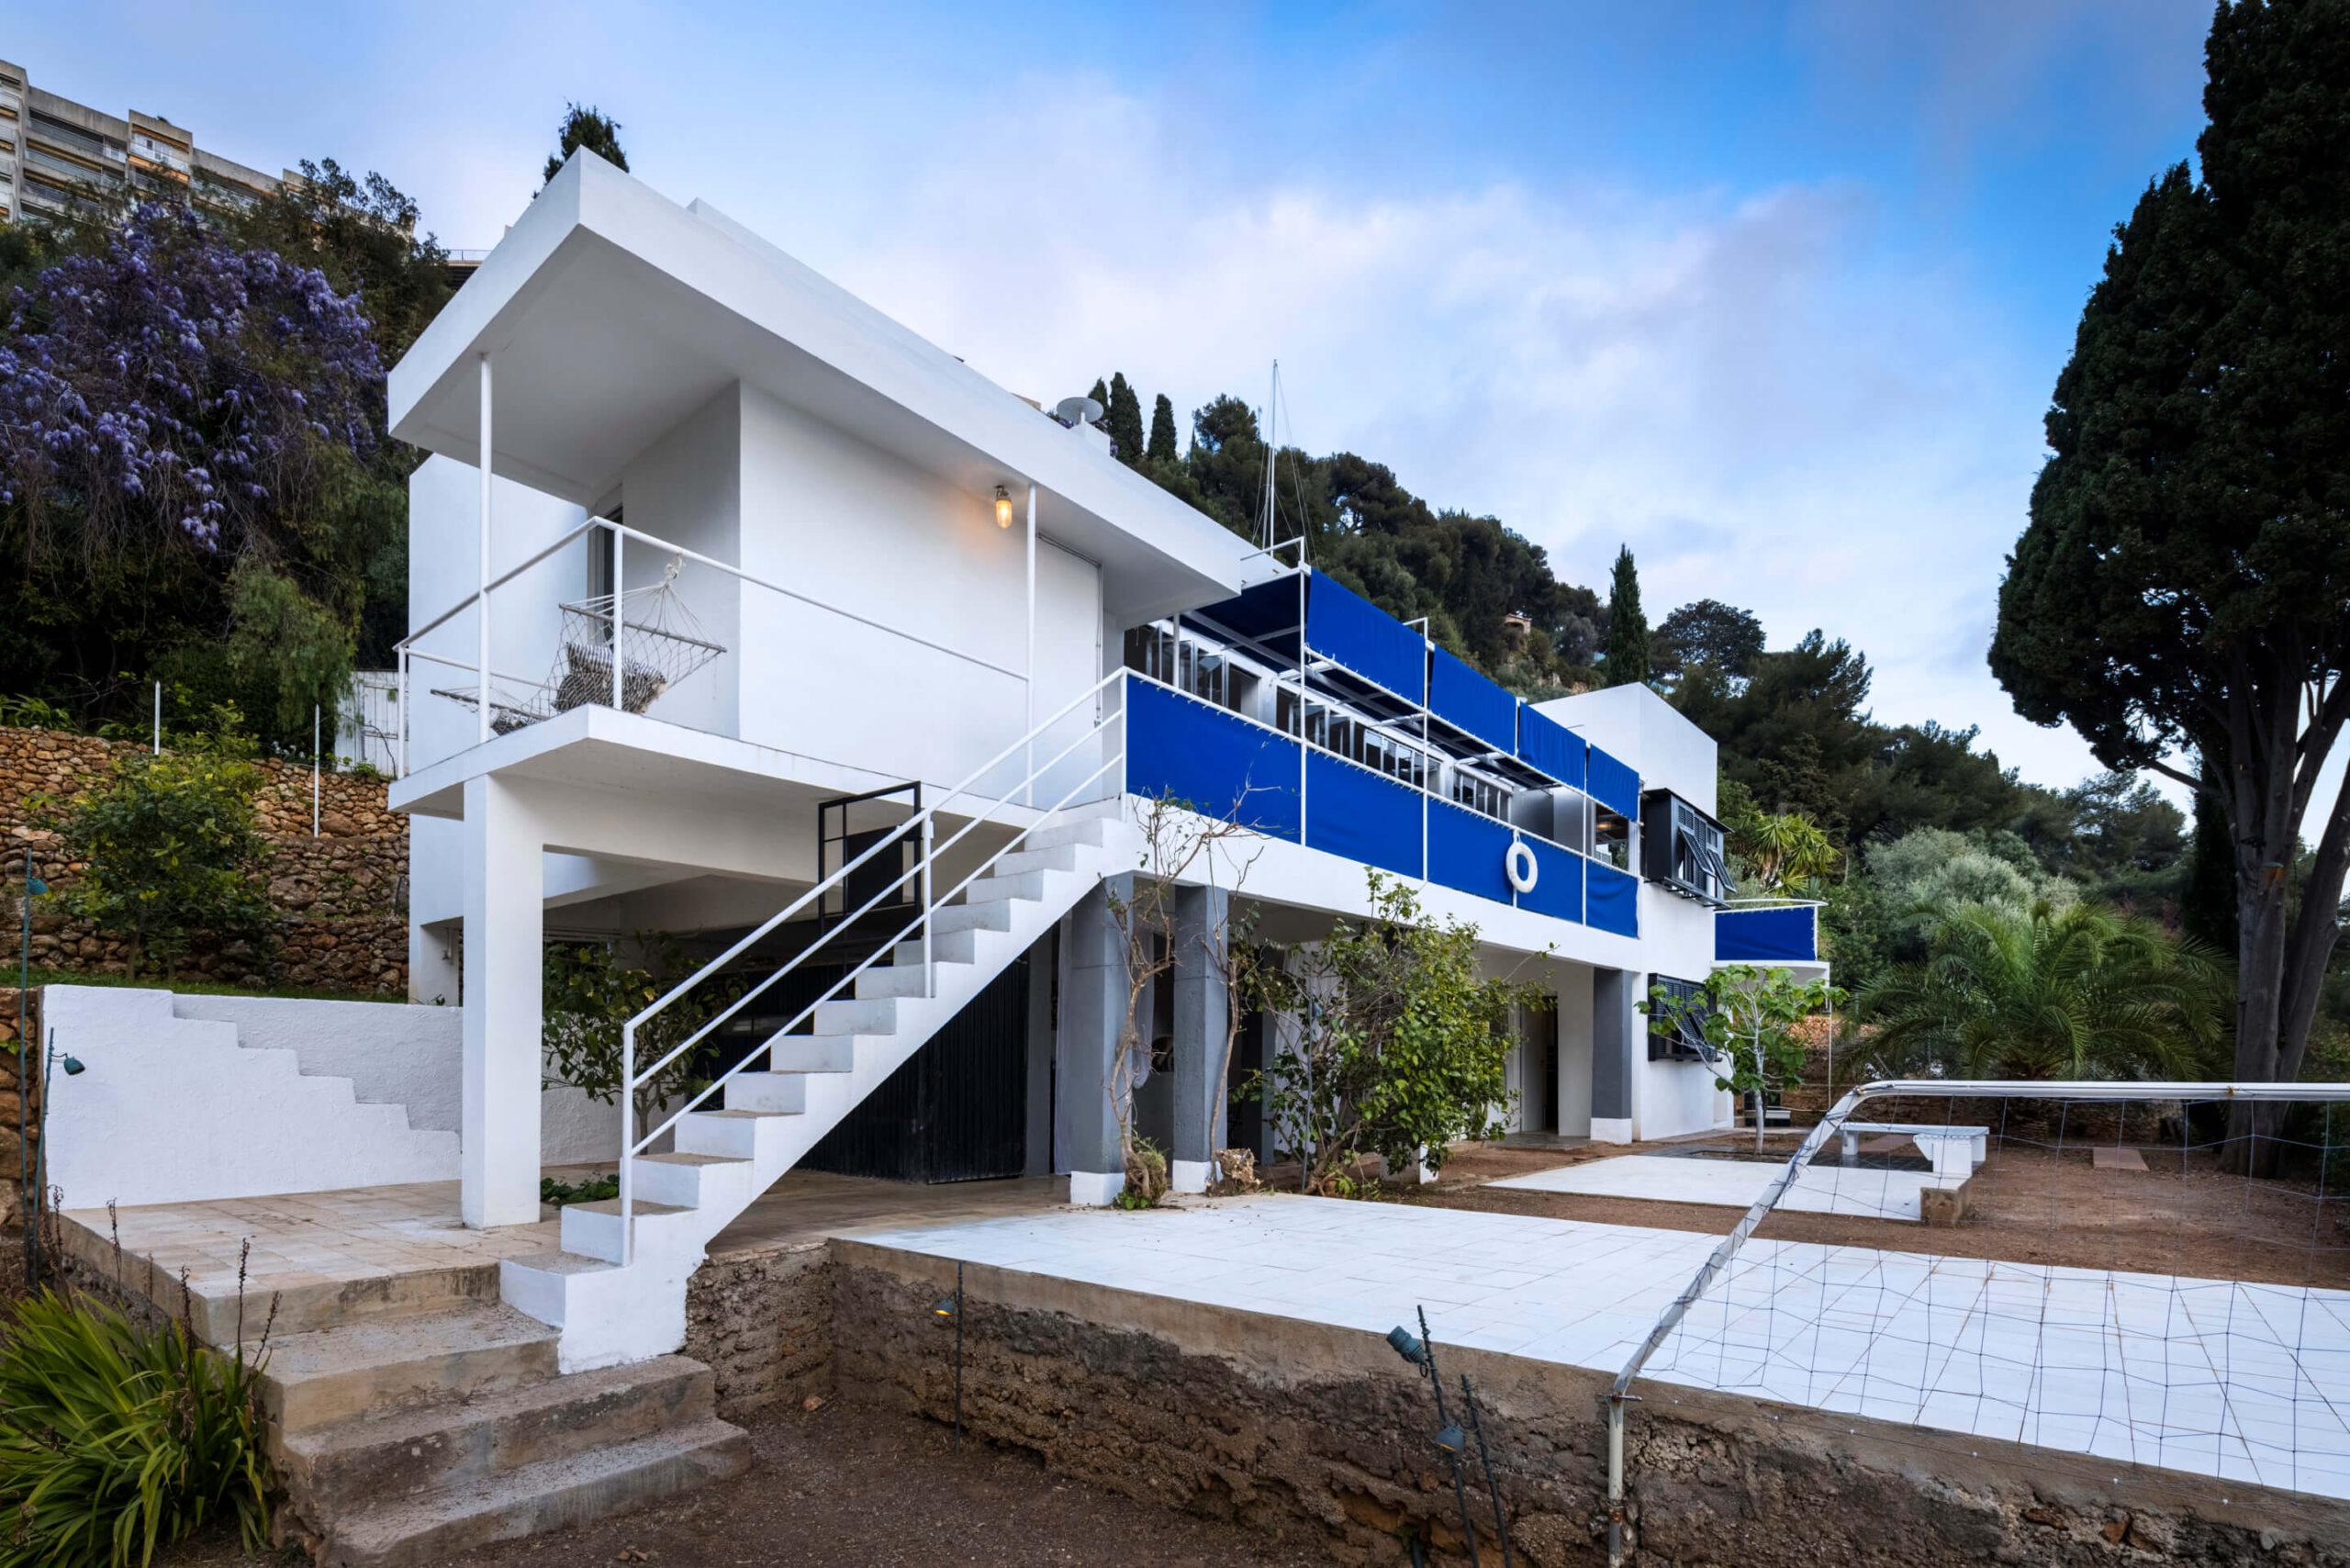 The facade of Eileen Gray's Villa E-1027. The cubist villa is bright white with touches of vibrant blue canvas covering open walkways.